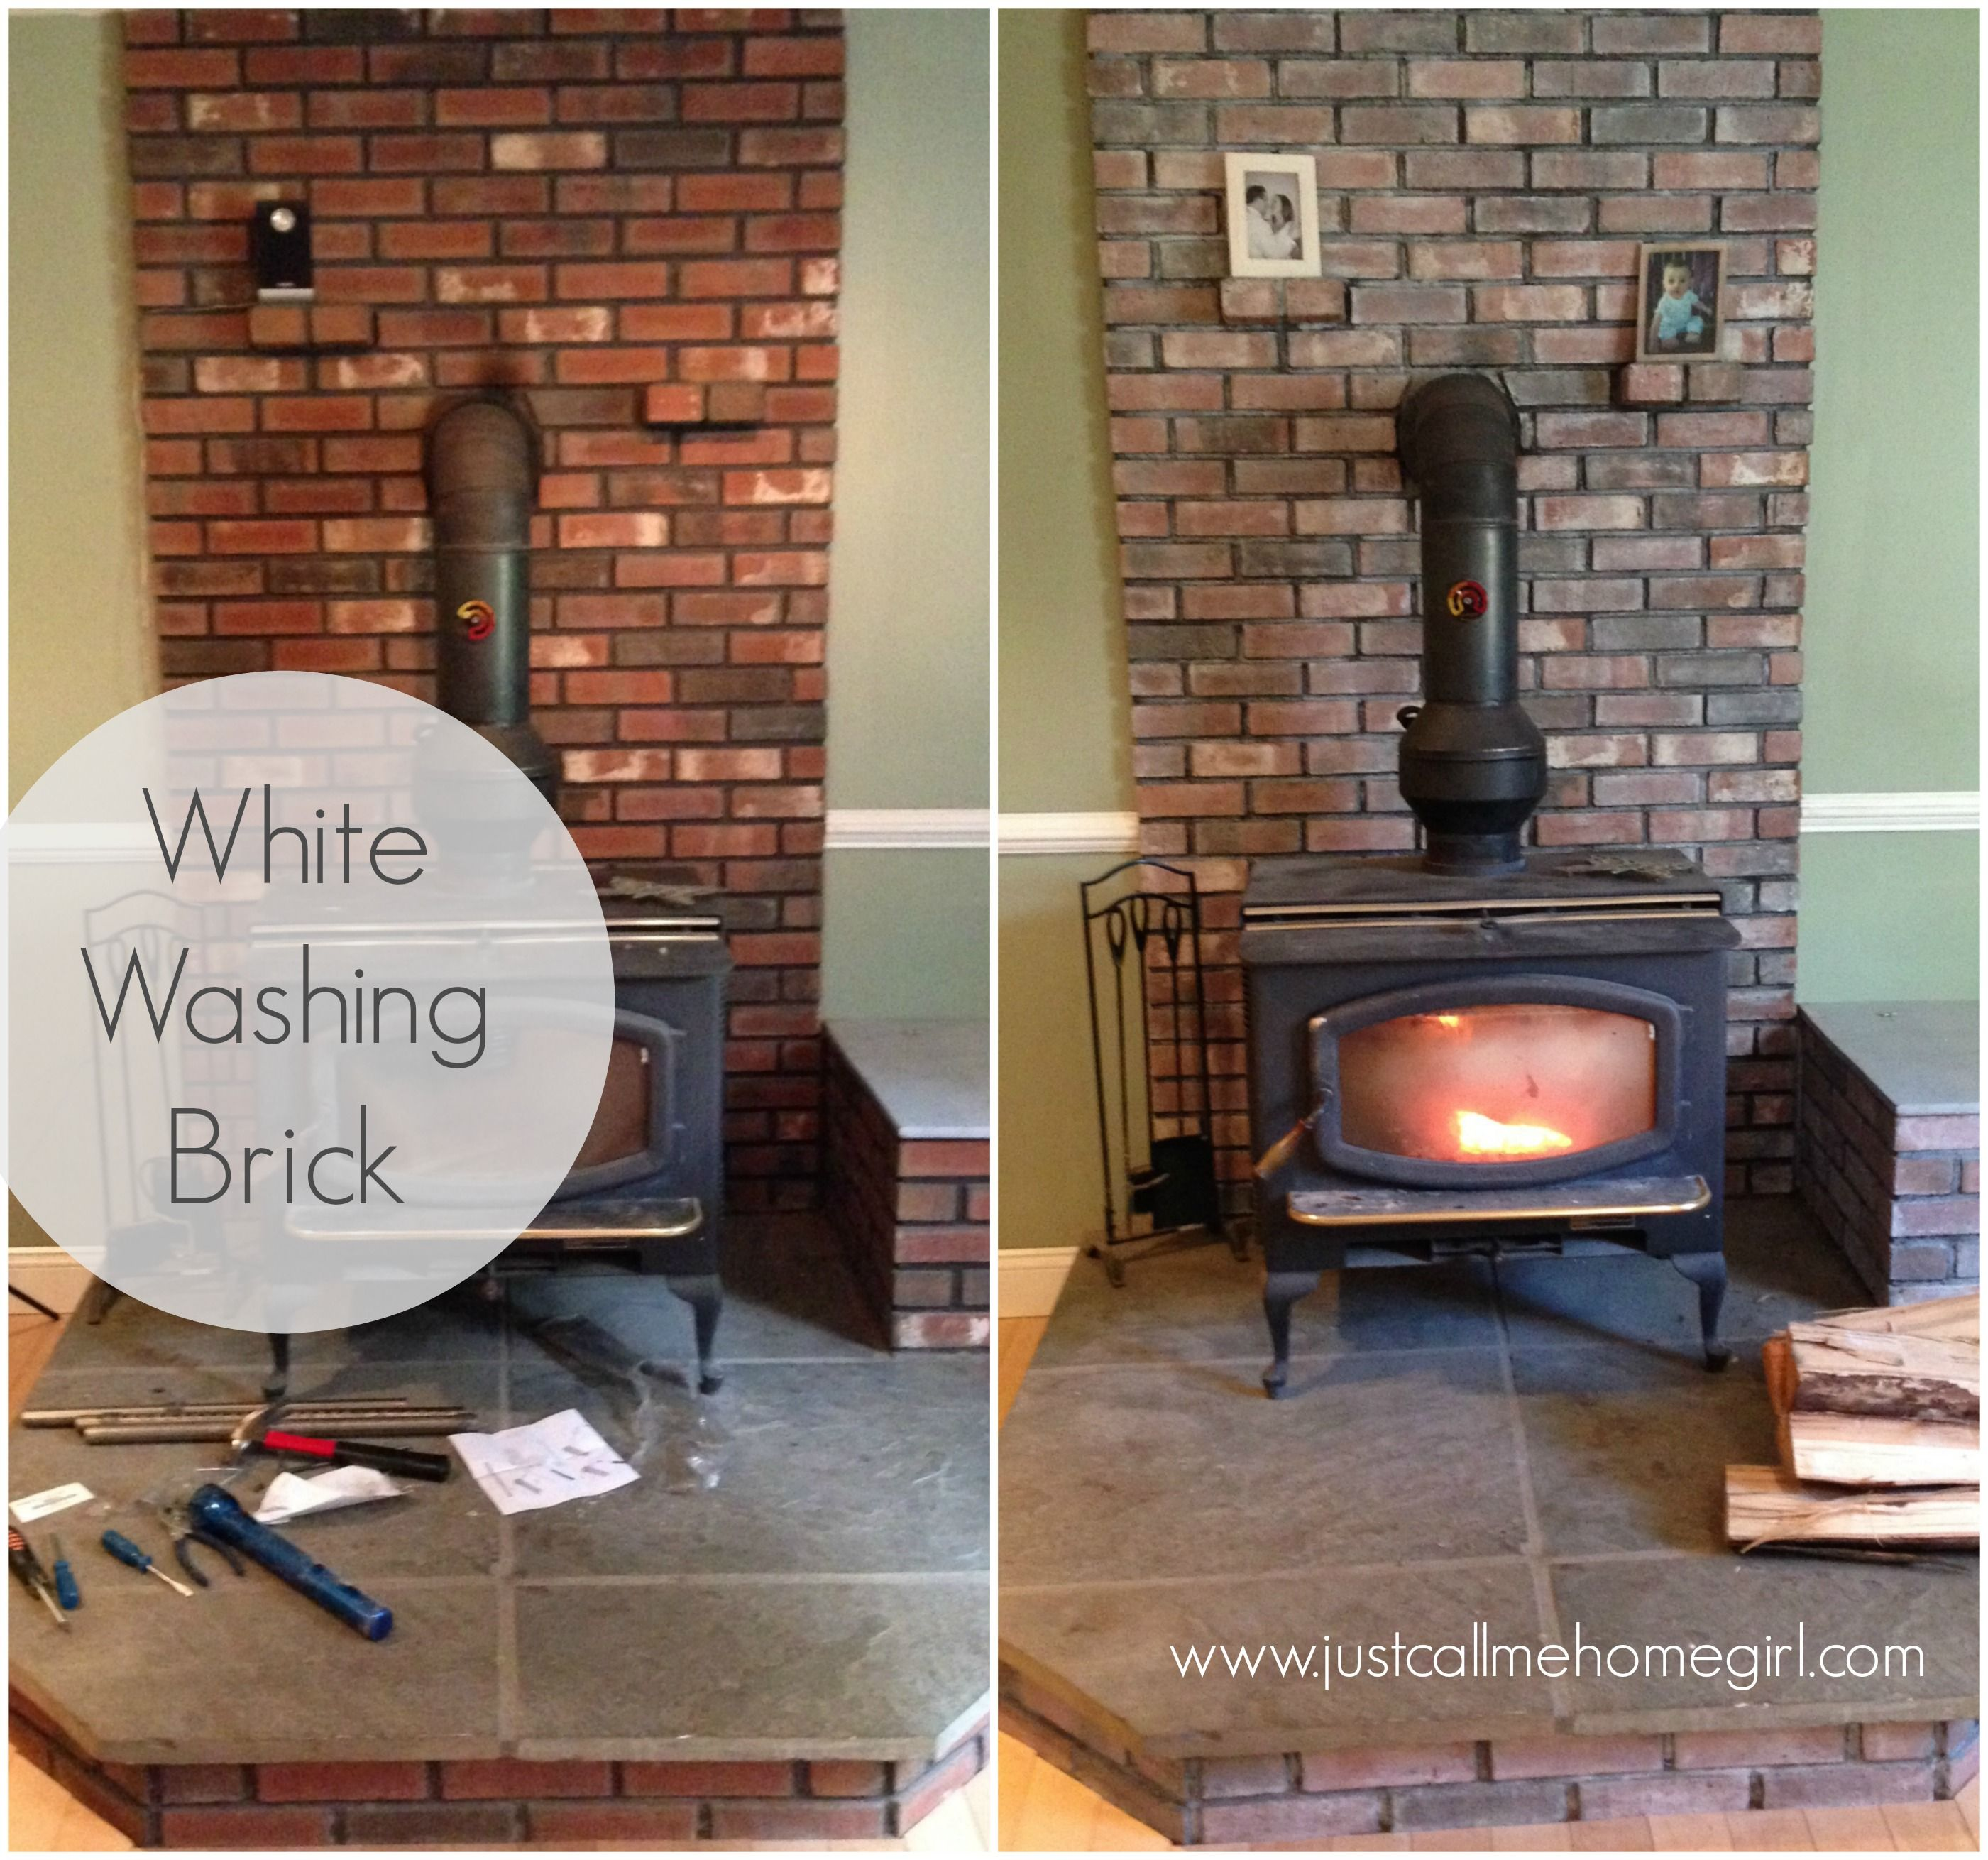 White Washing Brick Wood Stove Decor White Wash Brick